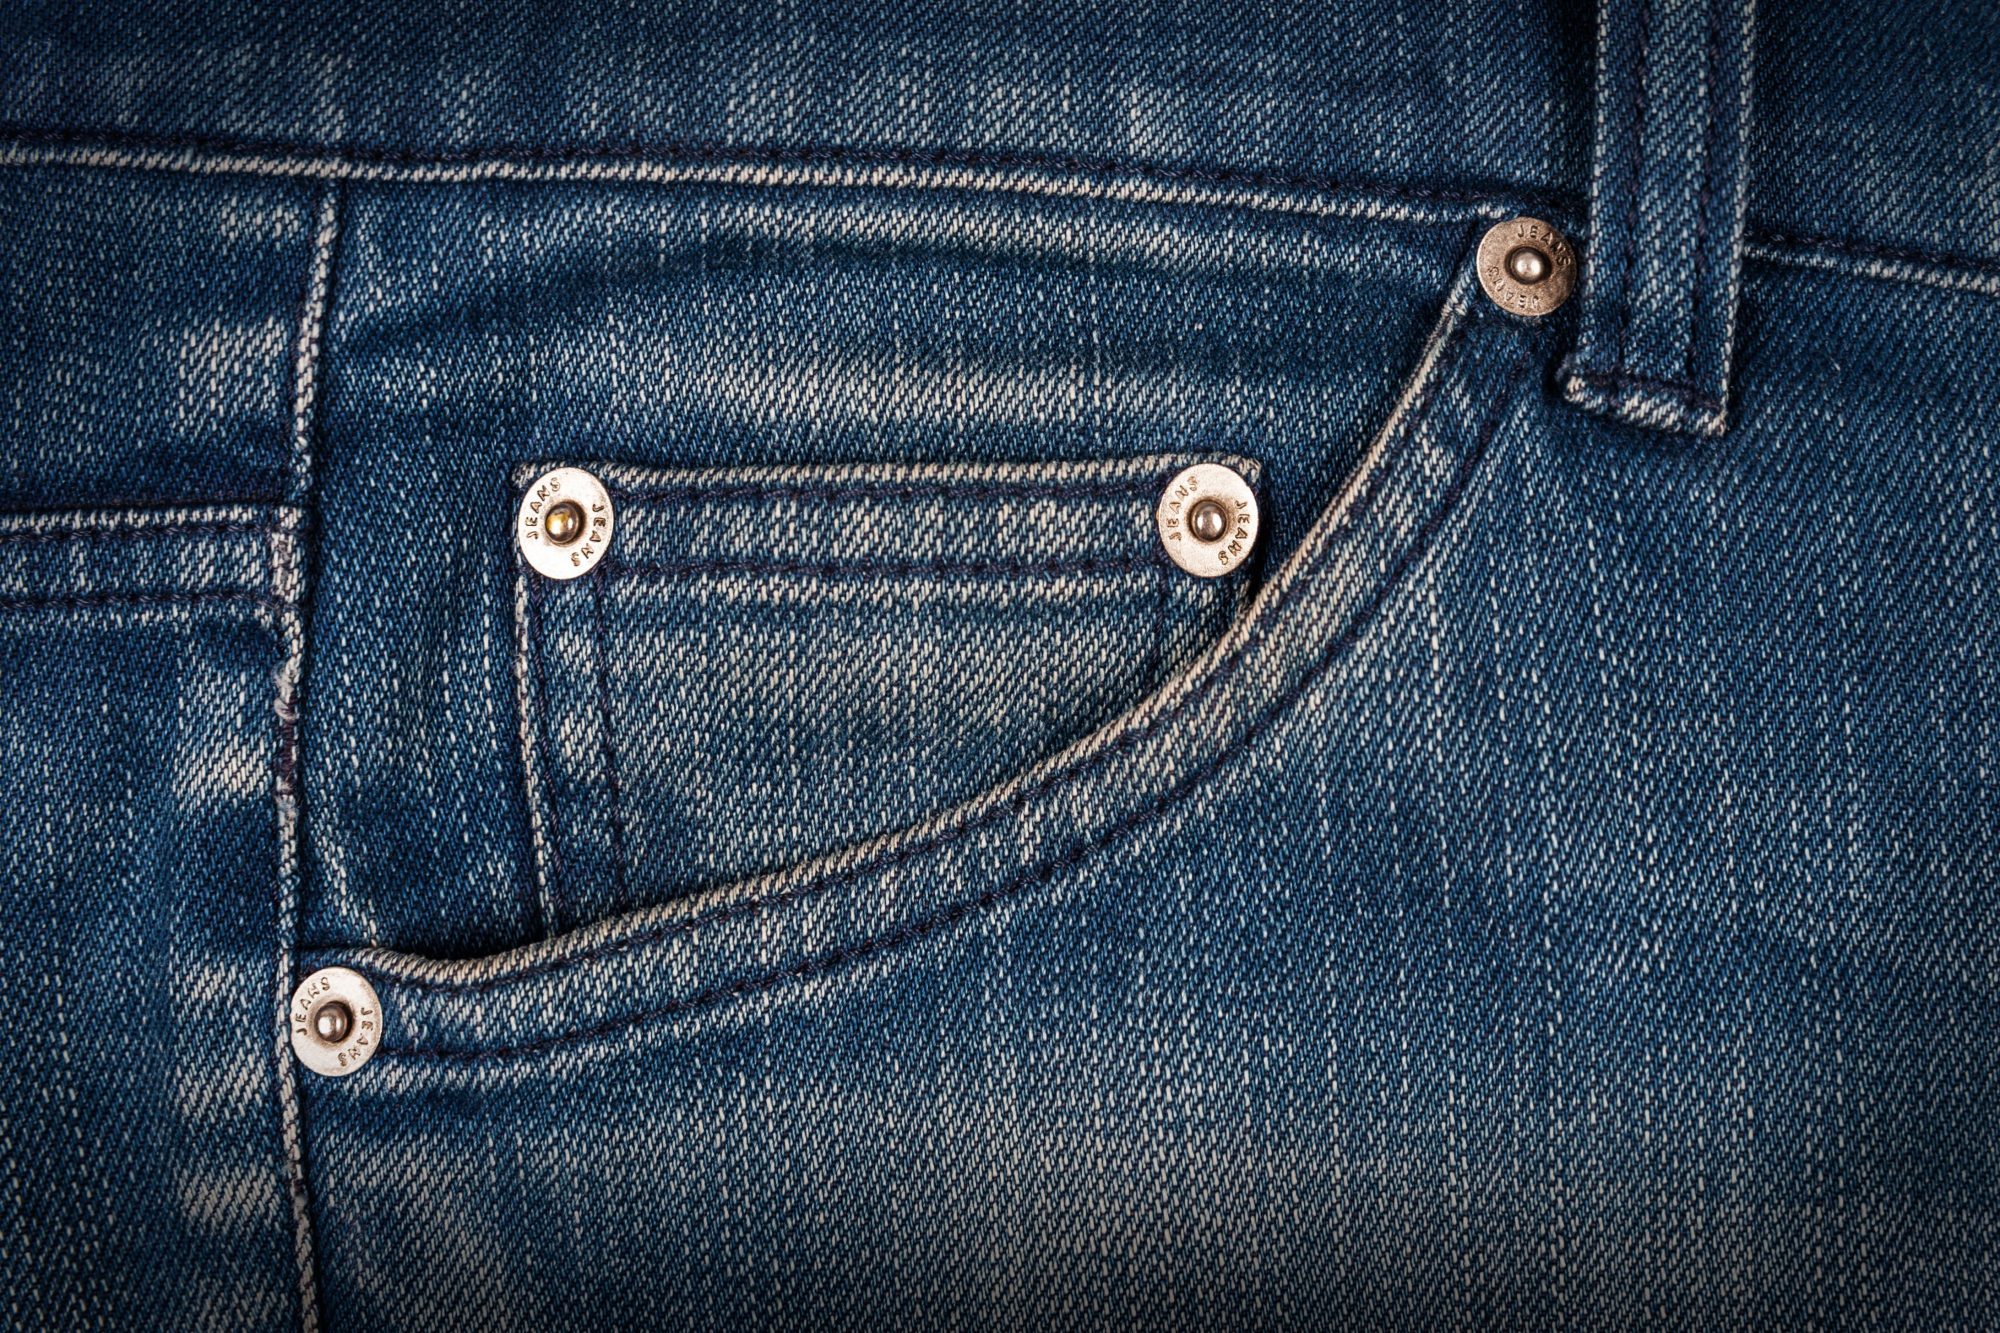 Rivets on Pocket of Jeans